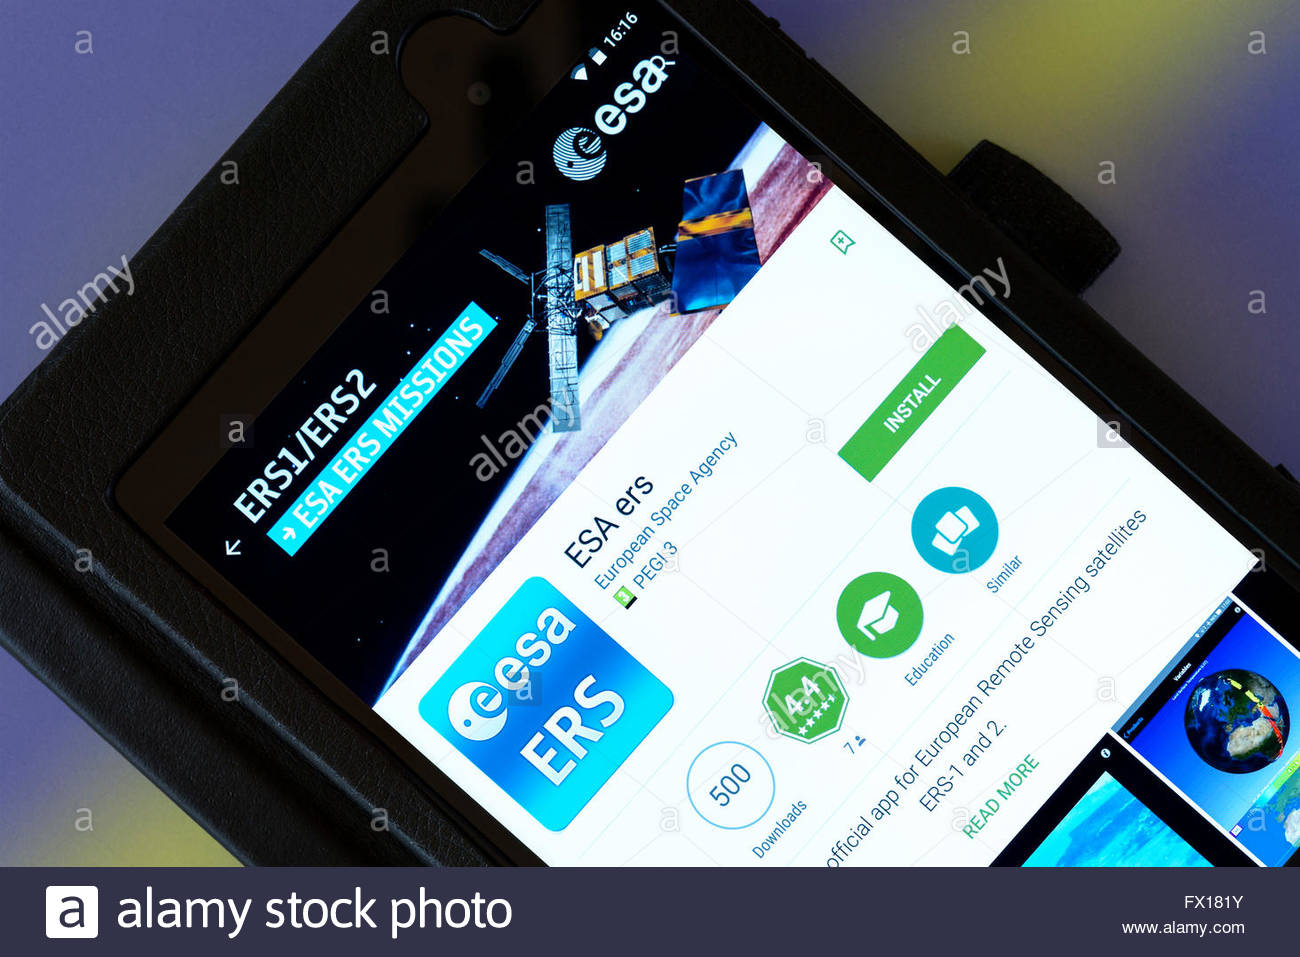 European Space Agency app on an android tablet PC, Dorset, England, UK - Stock Image